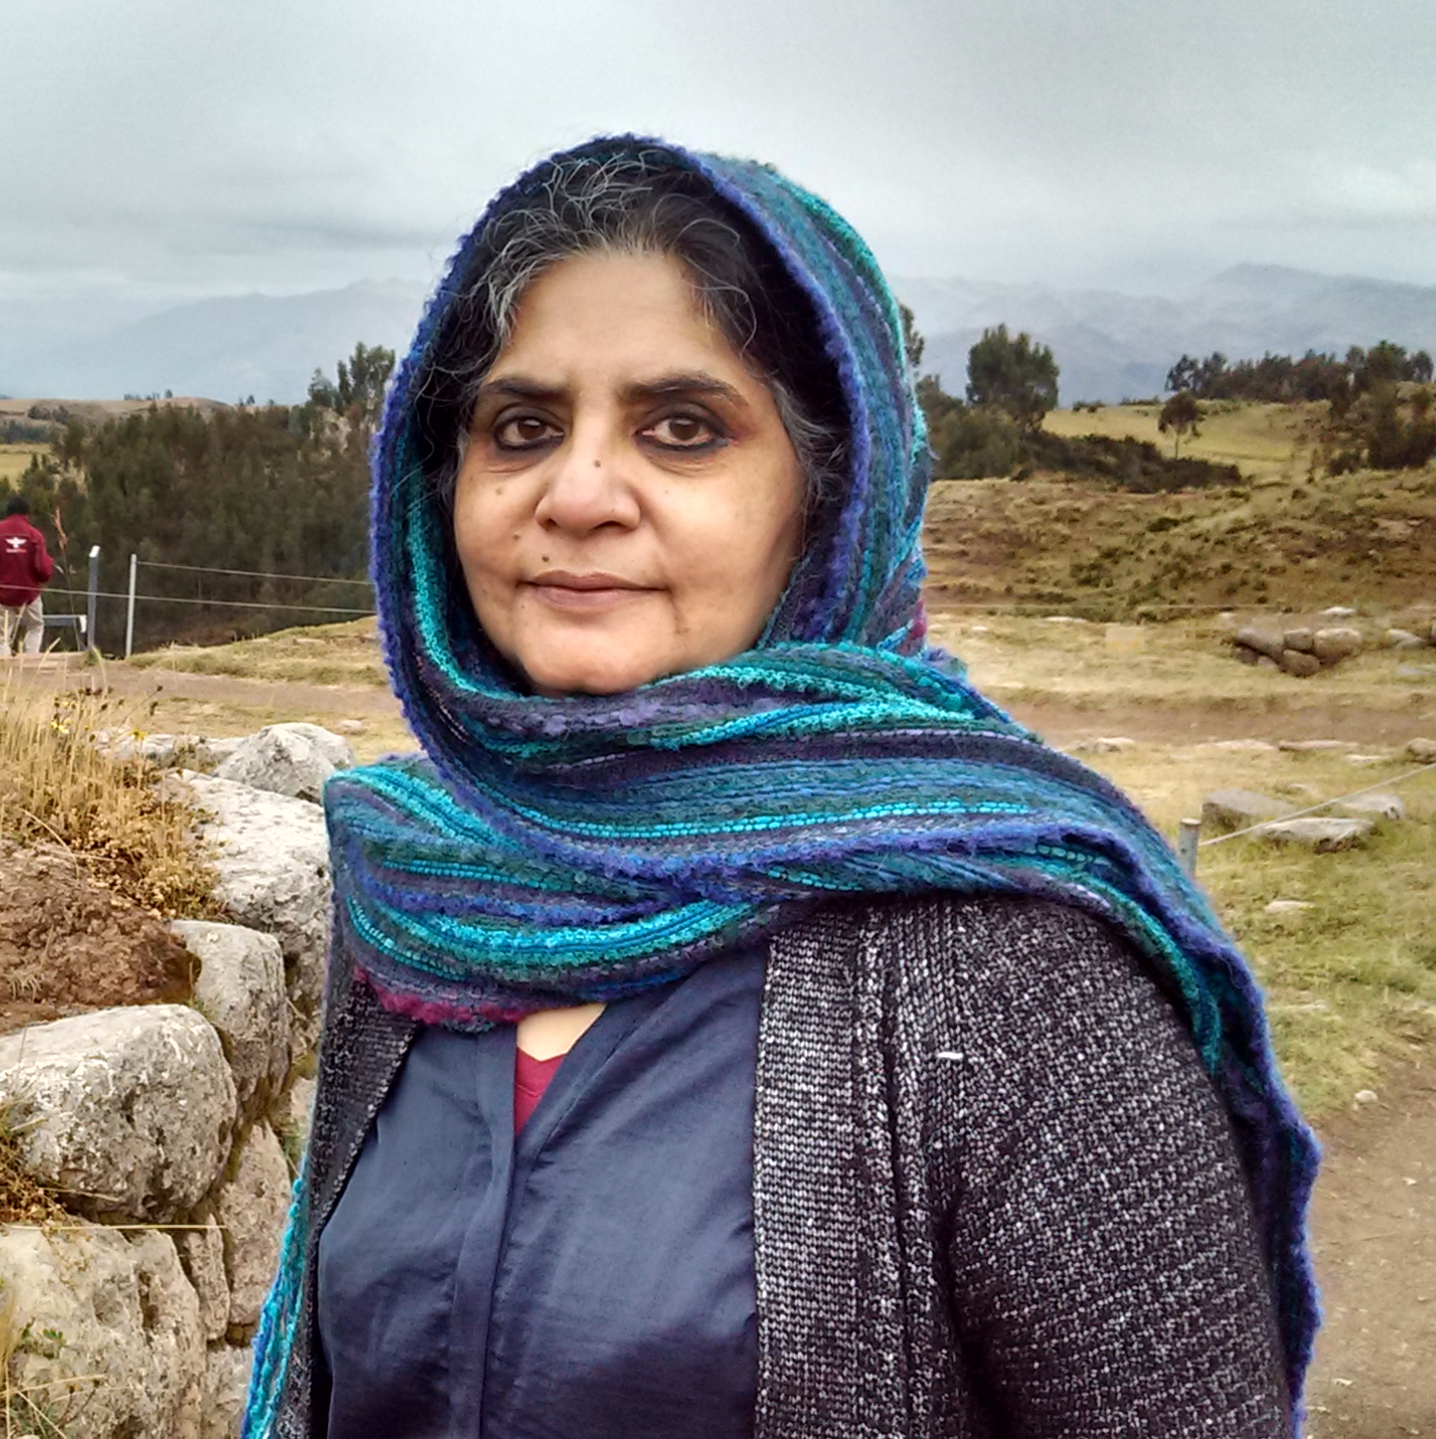 A photo of Radhika Alkazi in a landscape.